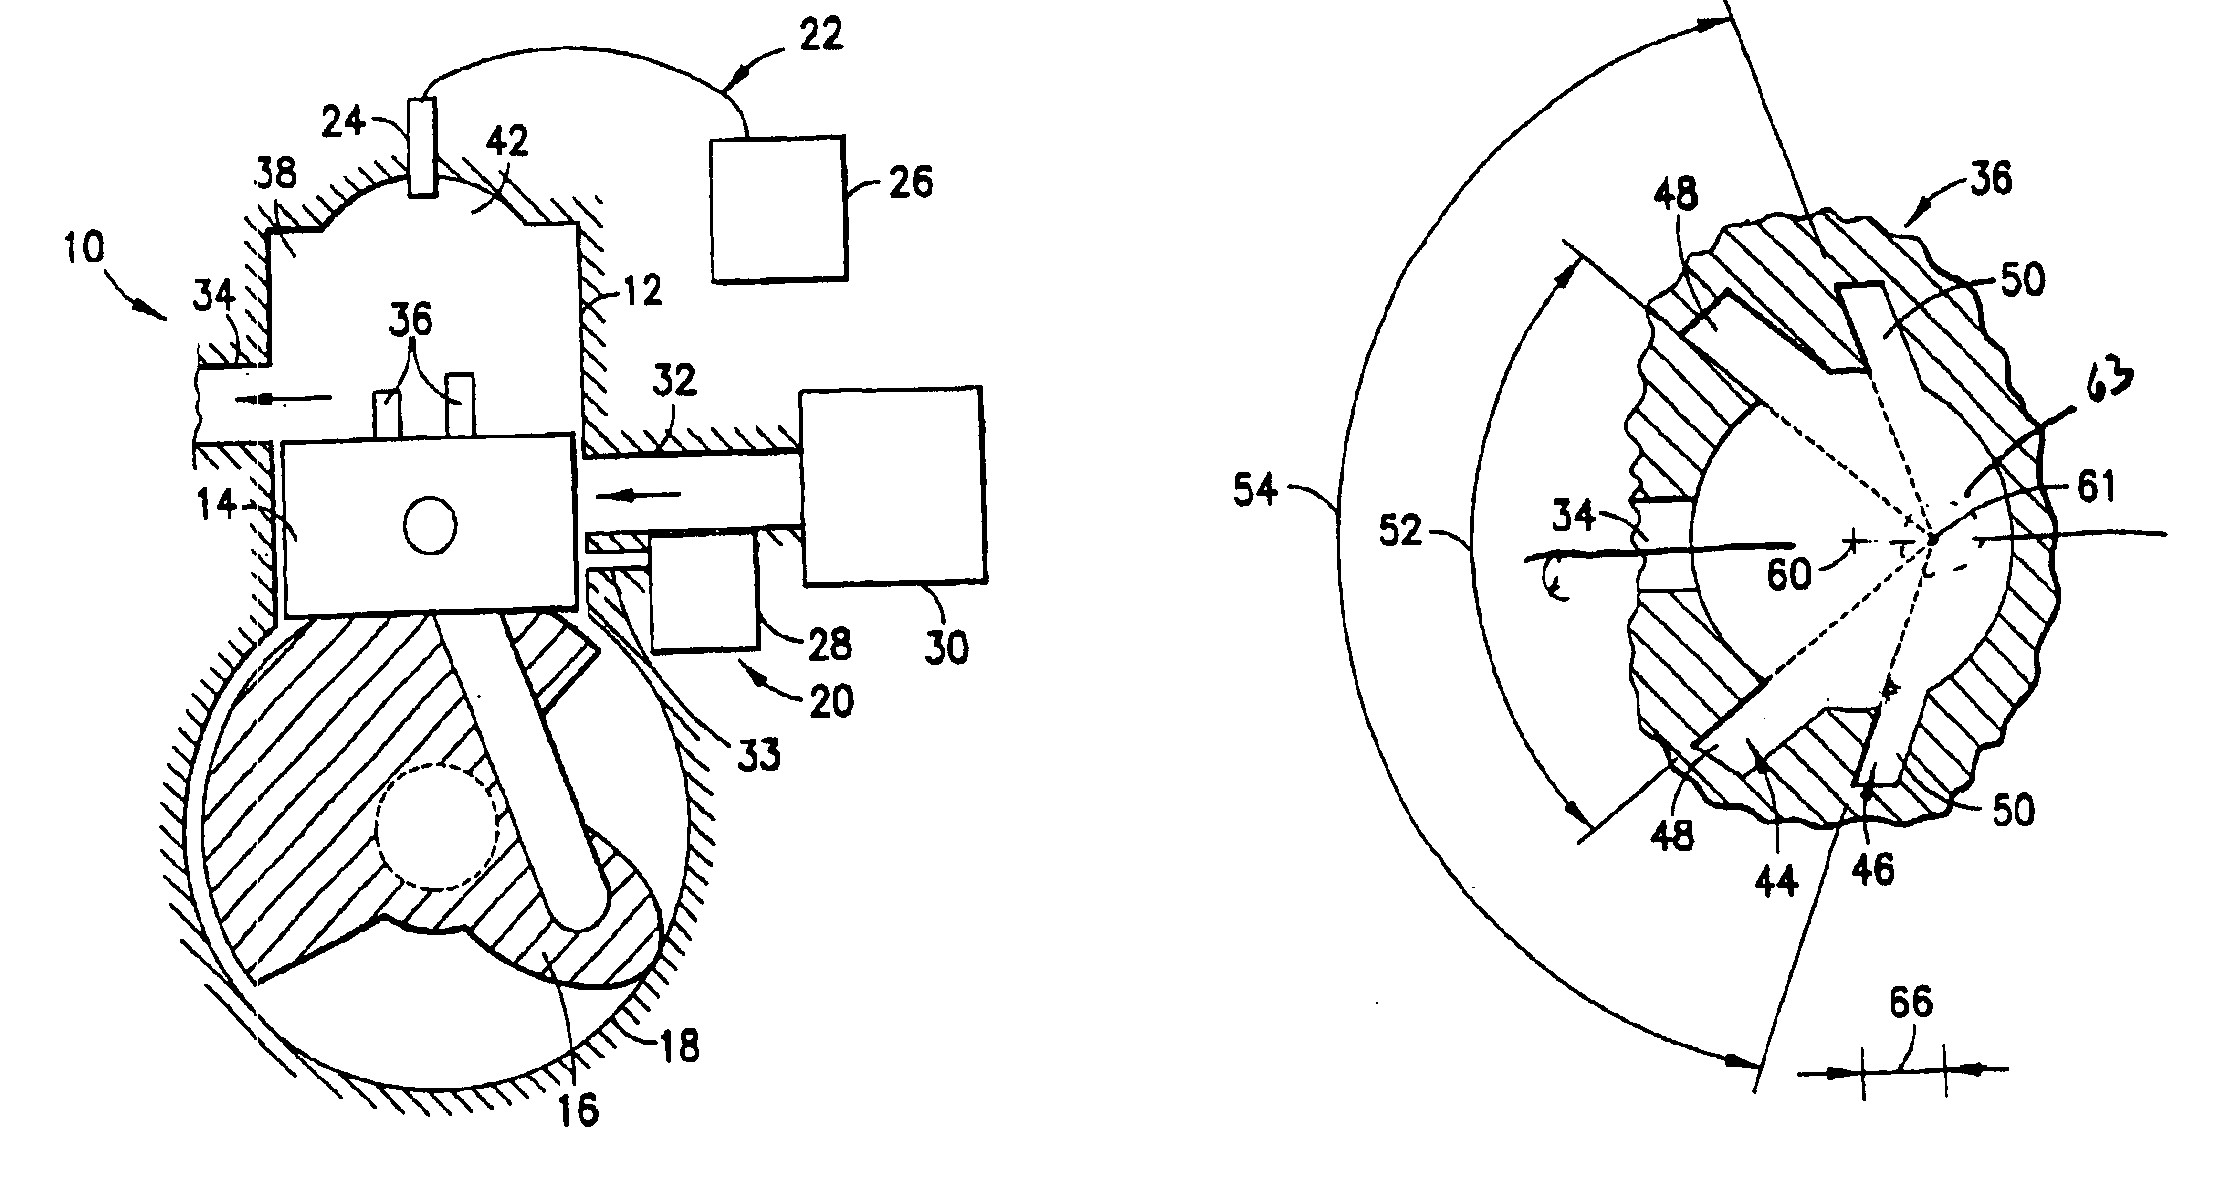 Port Timing Diagram Of Two Stroke Engine Show Posts Rsss396 Of Port Timing Diagram Of Two Stroke Engine